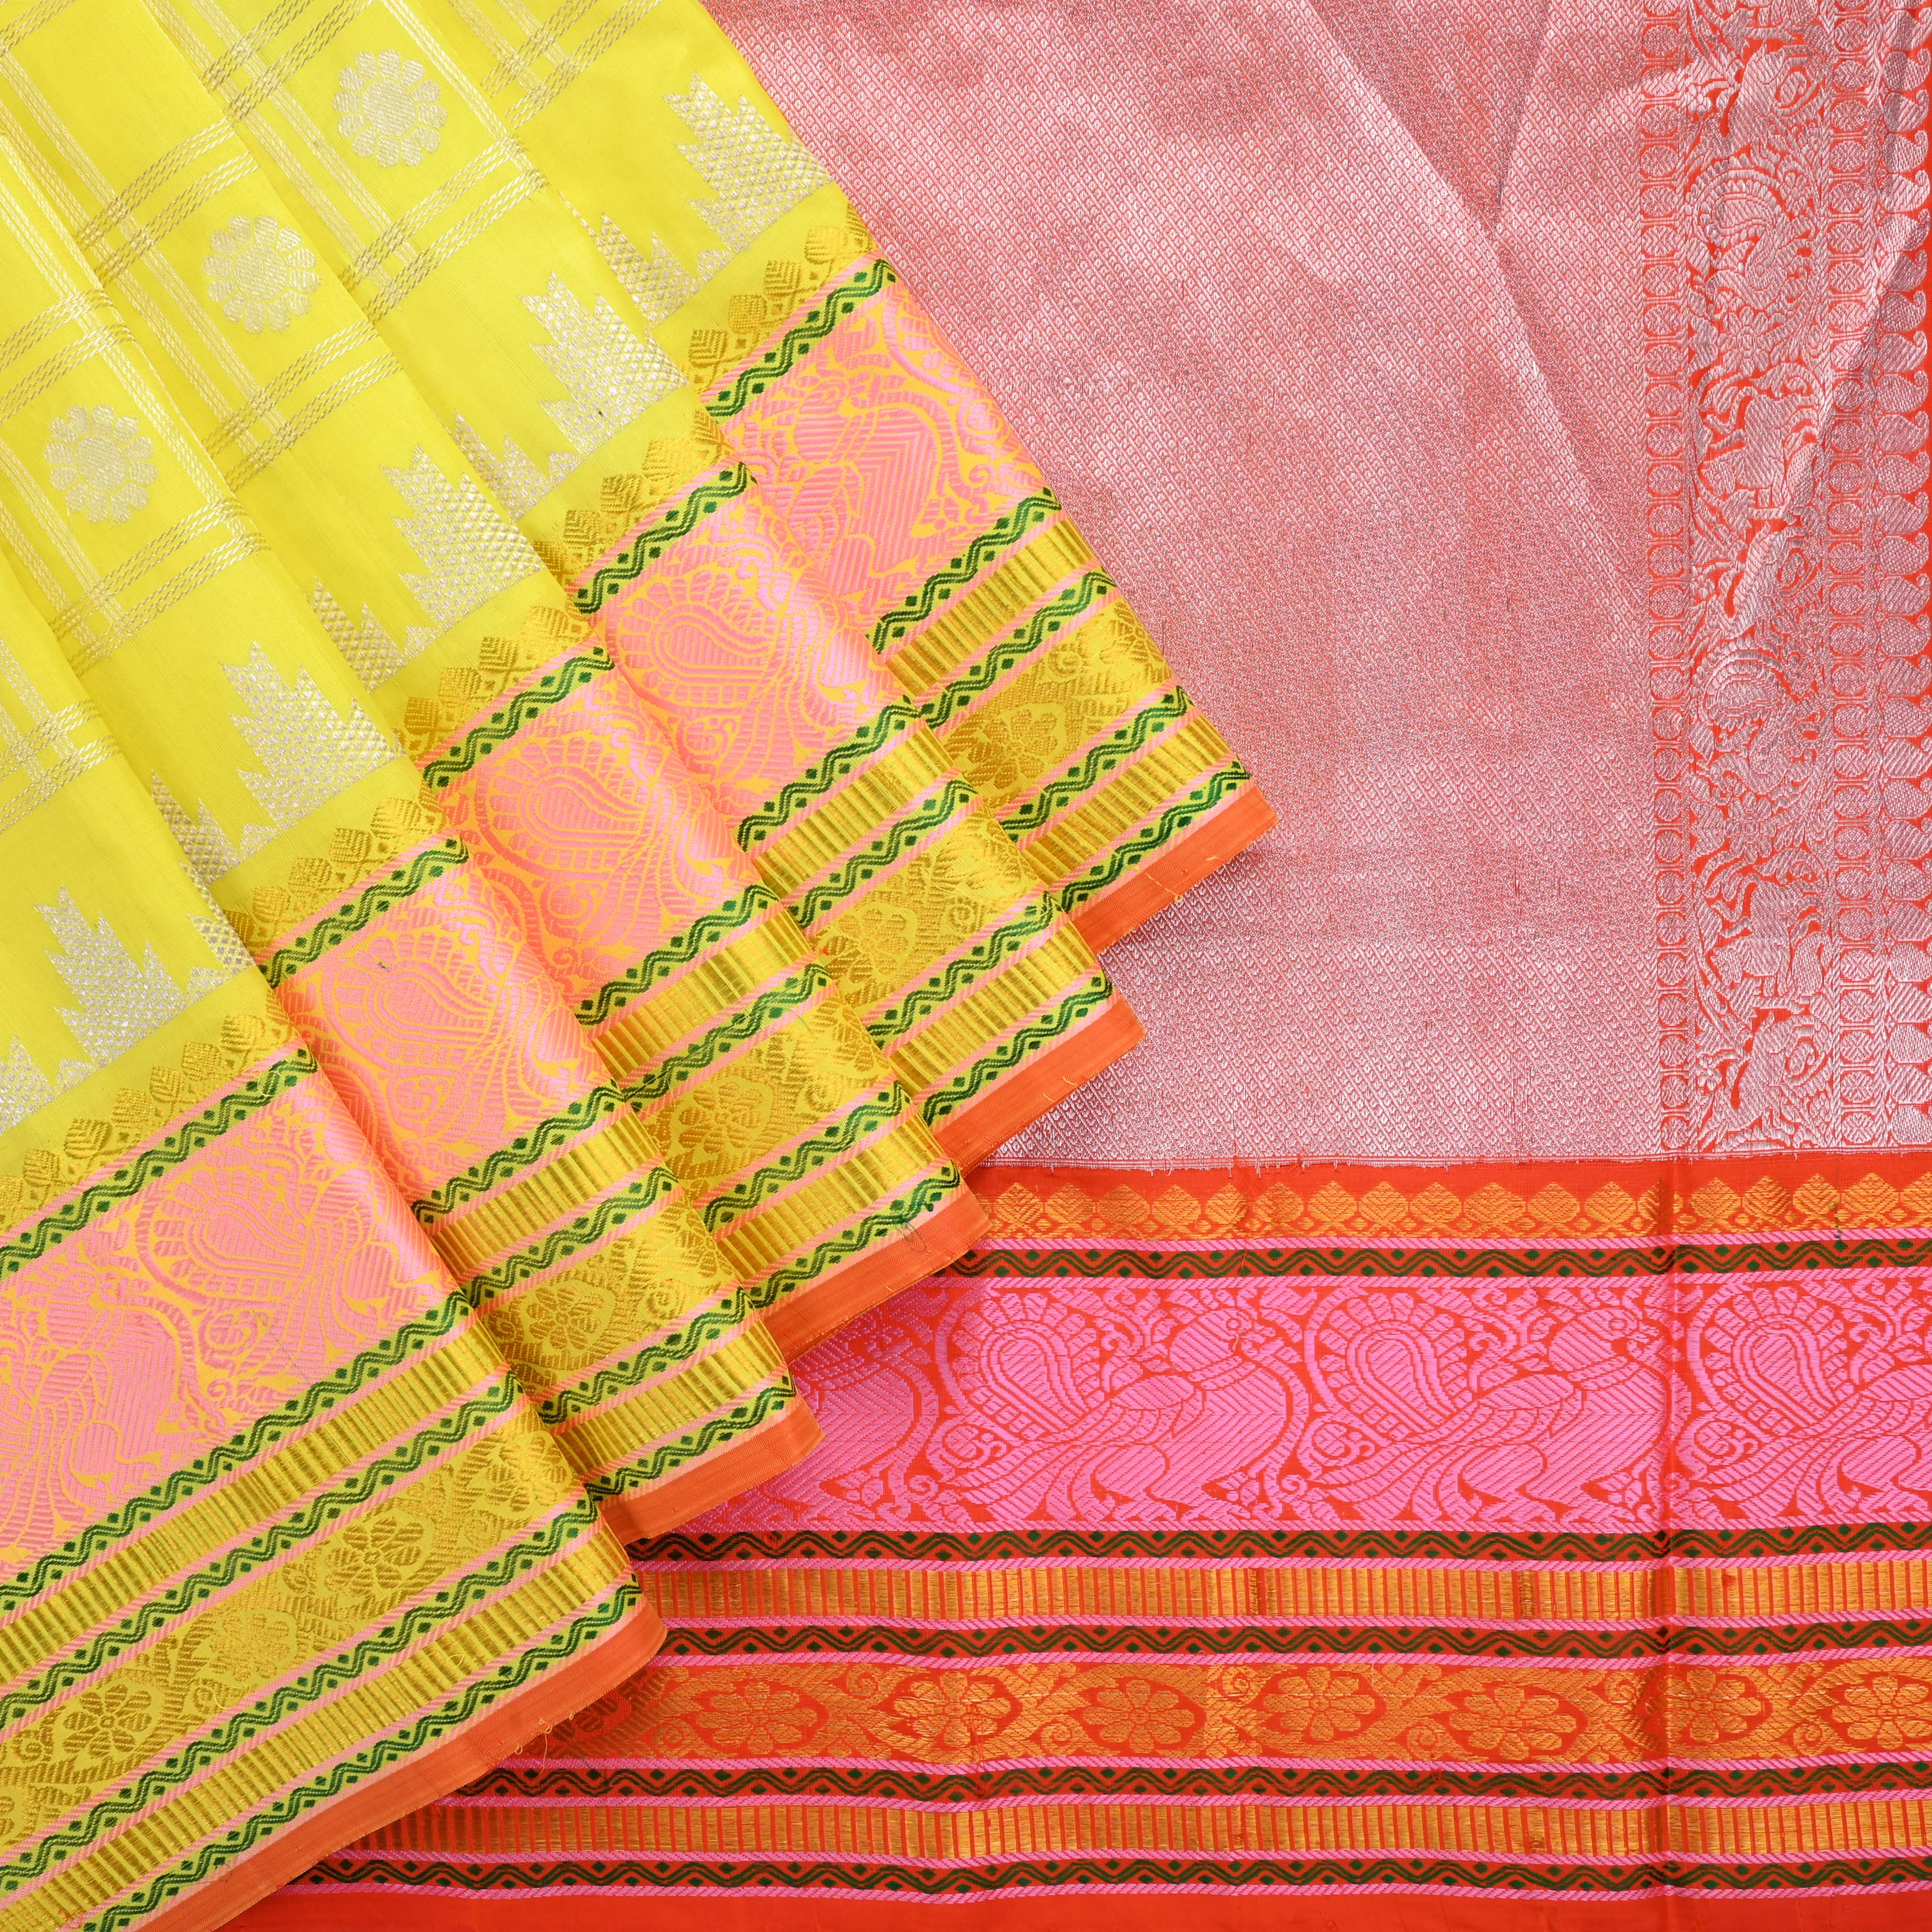 228858-Lemon Yellow Venkatagiri Silk Handloom Saree